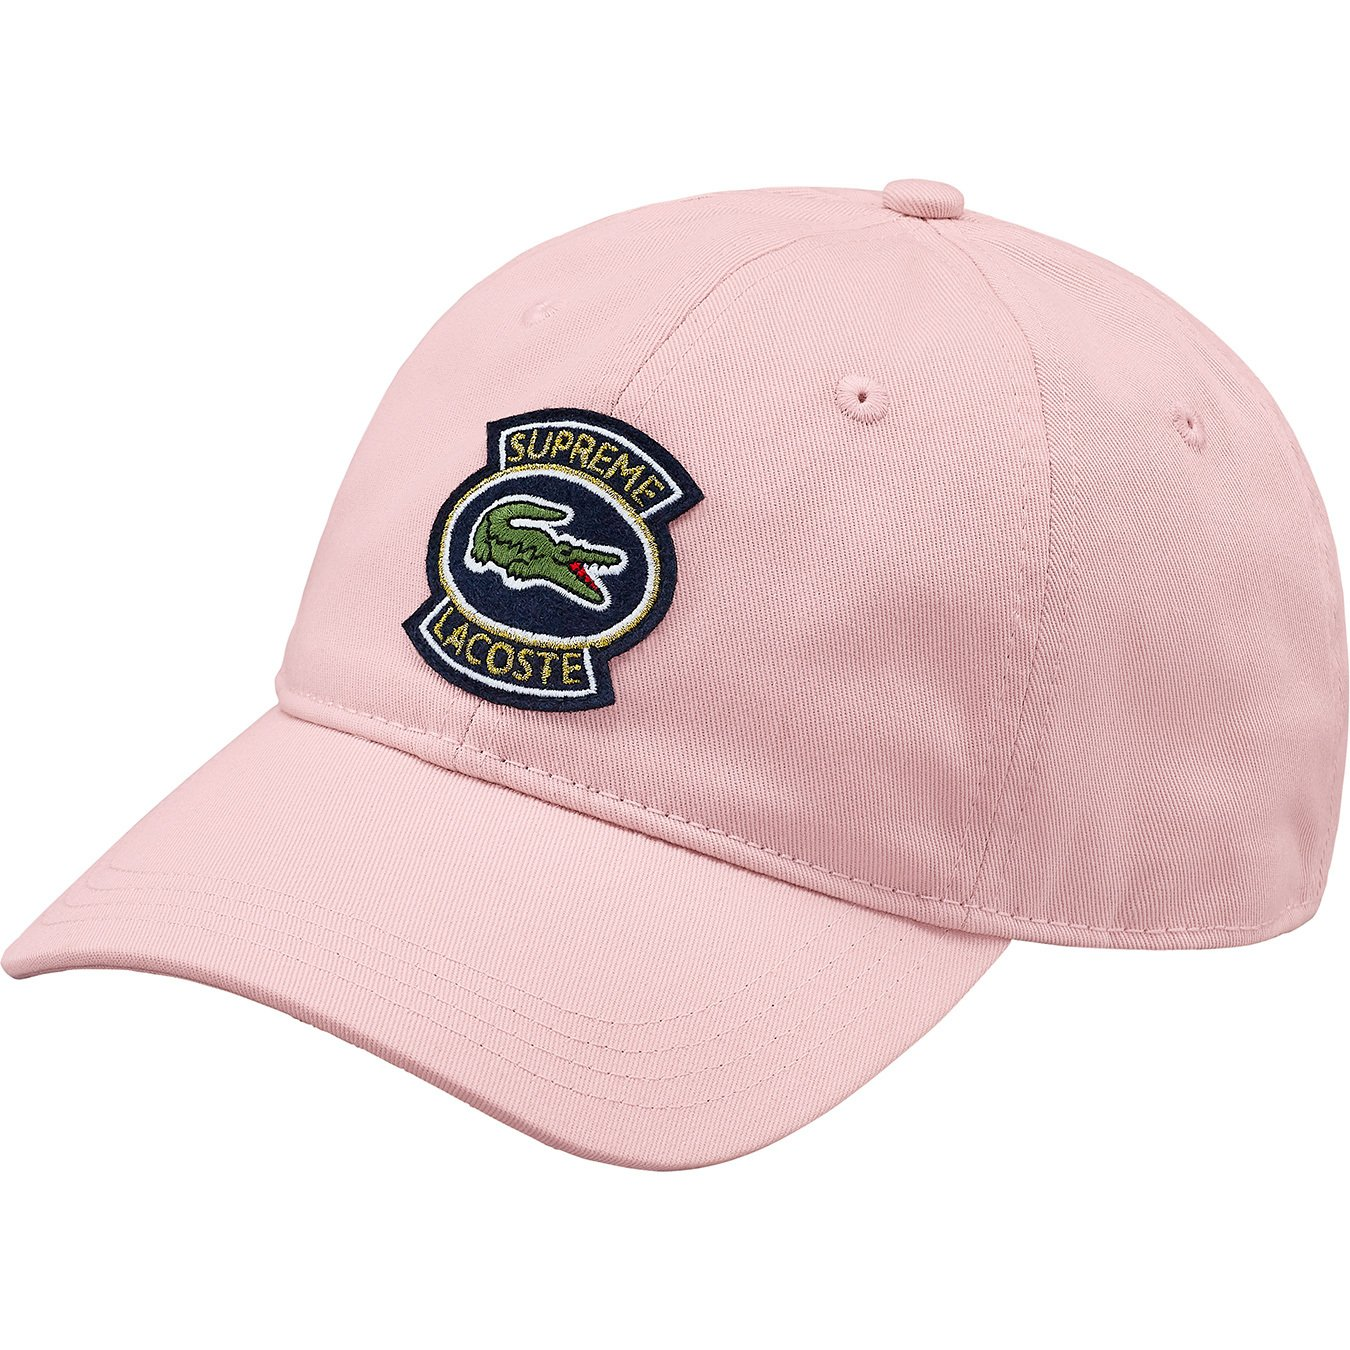 supreme-lacoste-18ss-collaboration-release-201180421-twill-6-panel-hat